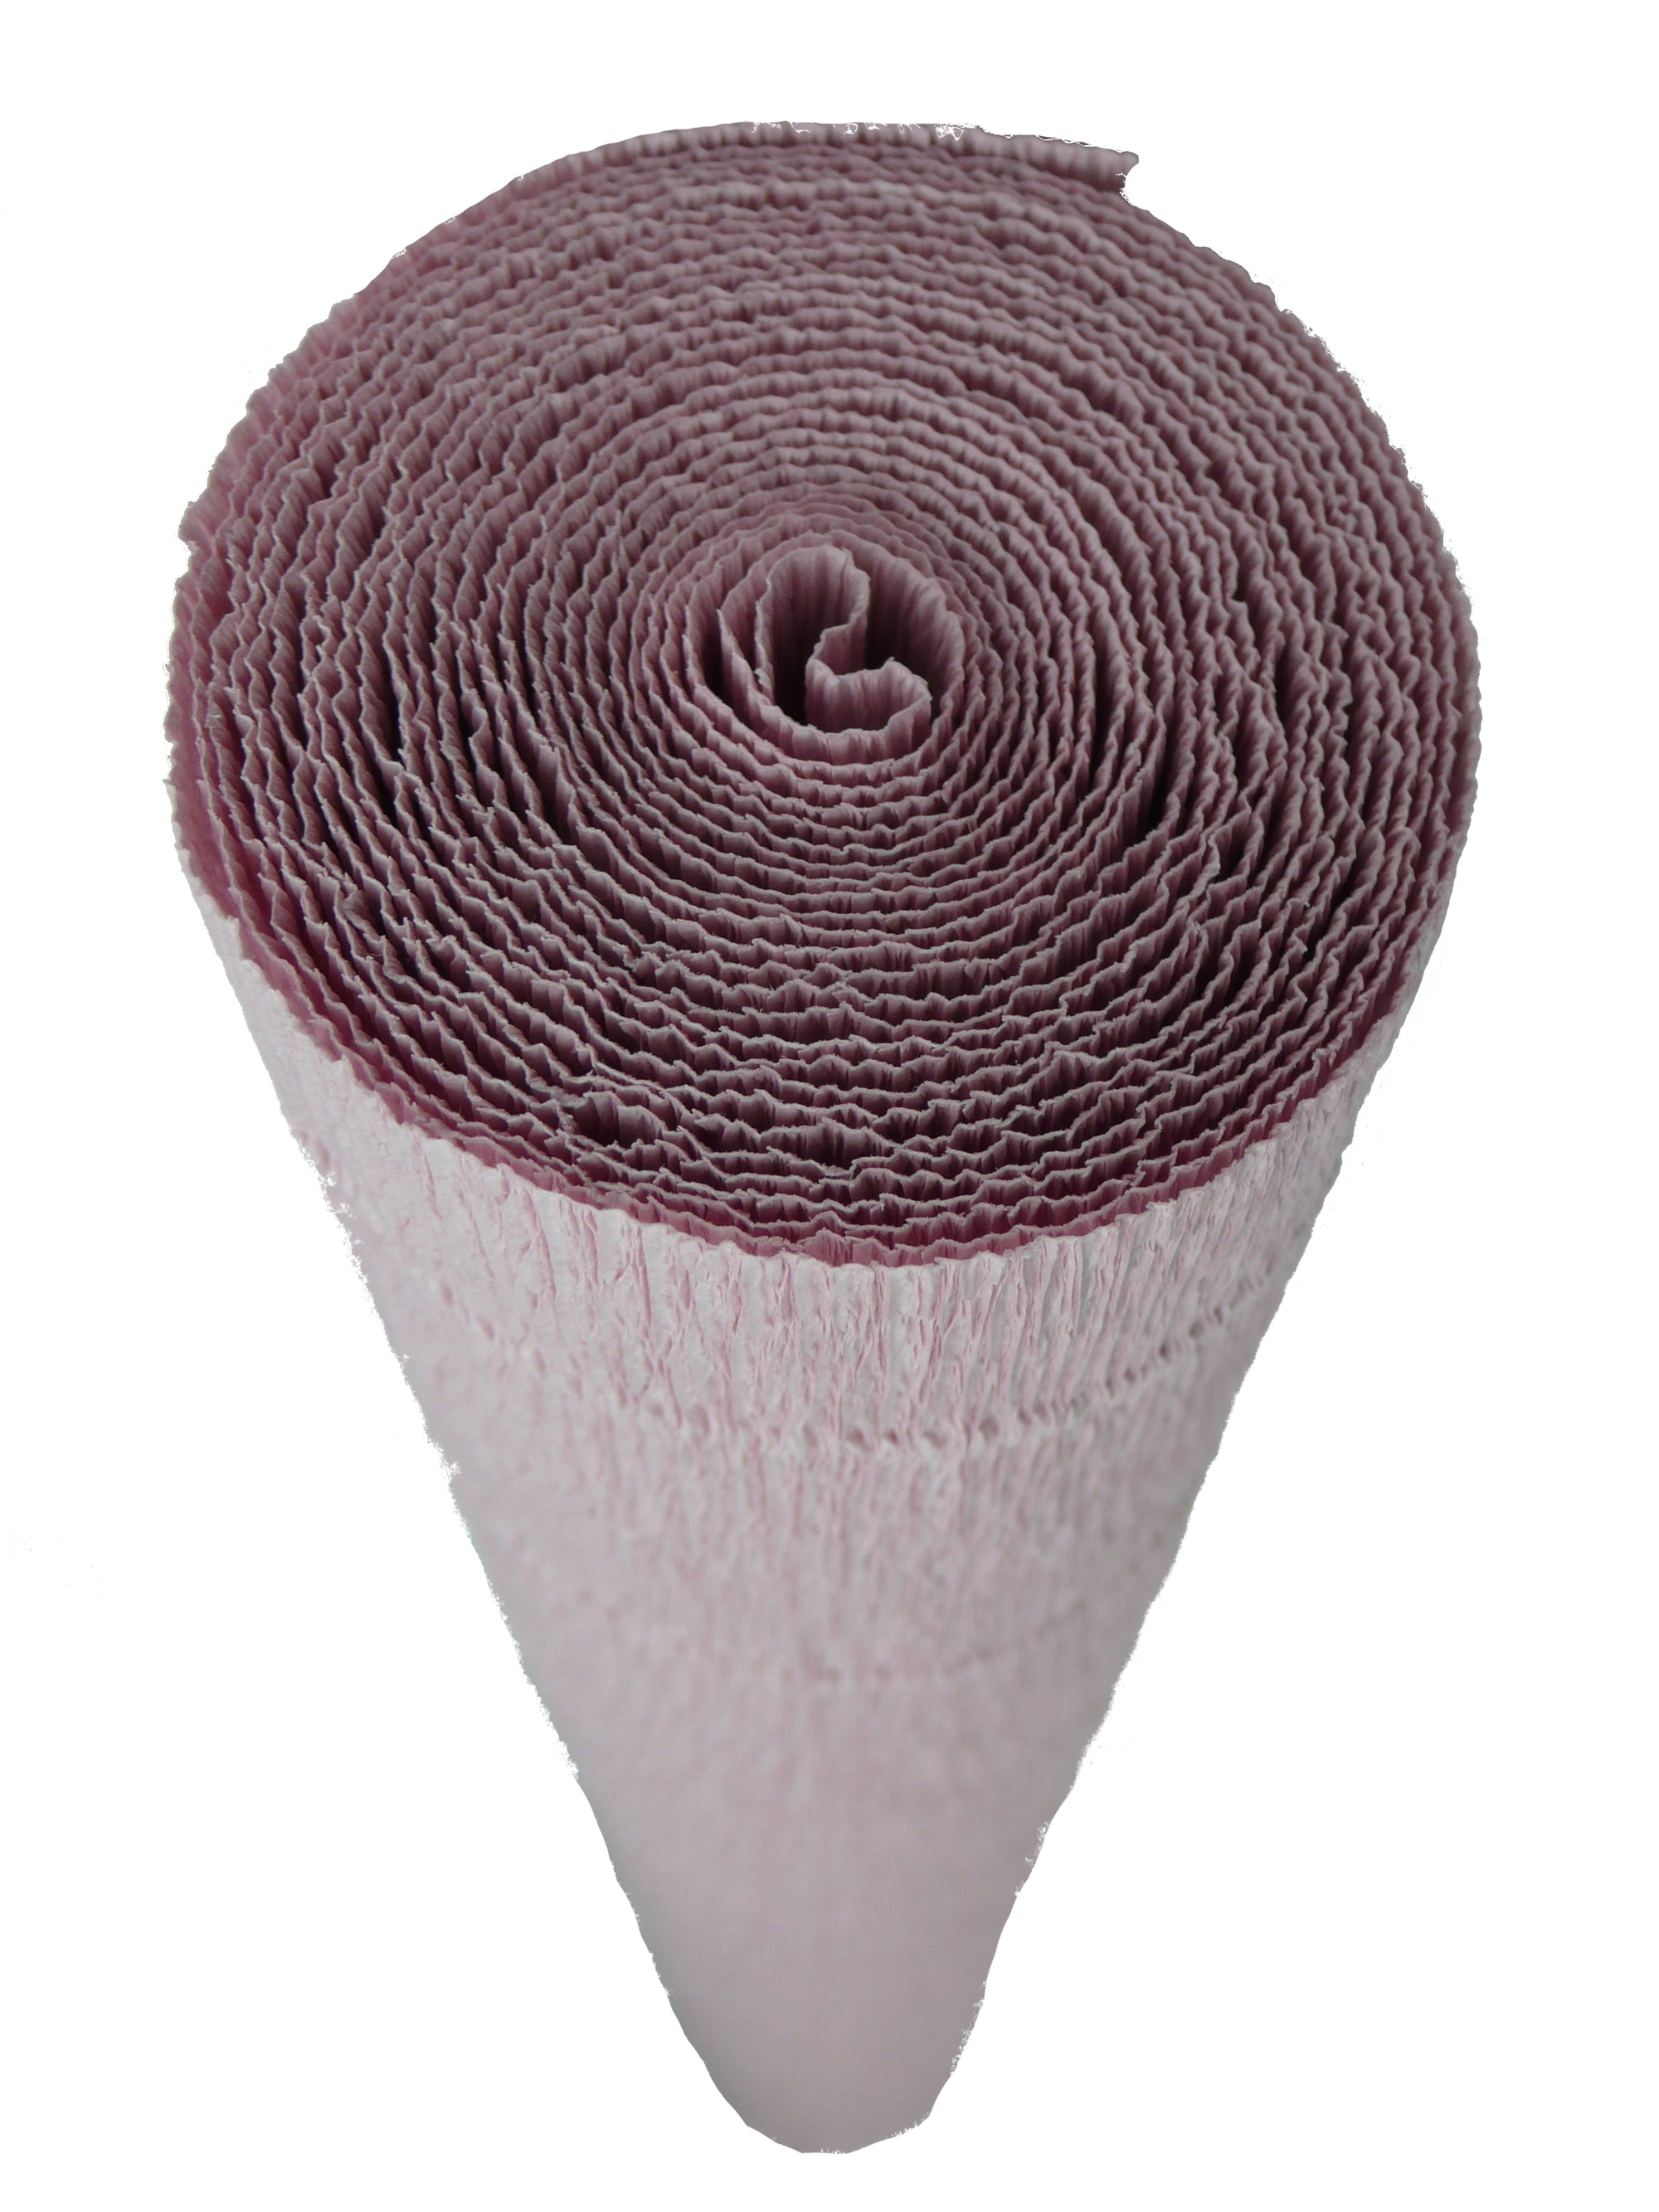 Italian Crepe Paper roll 180 gram - 17A/3 DISTANT DRUMS ROSE BY TIFFANIE TURNER